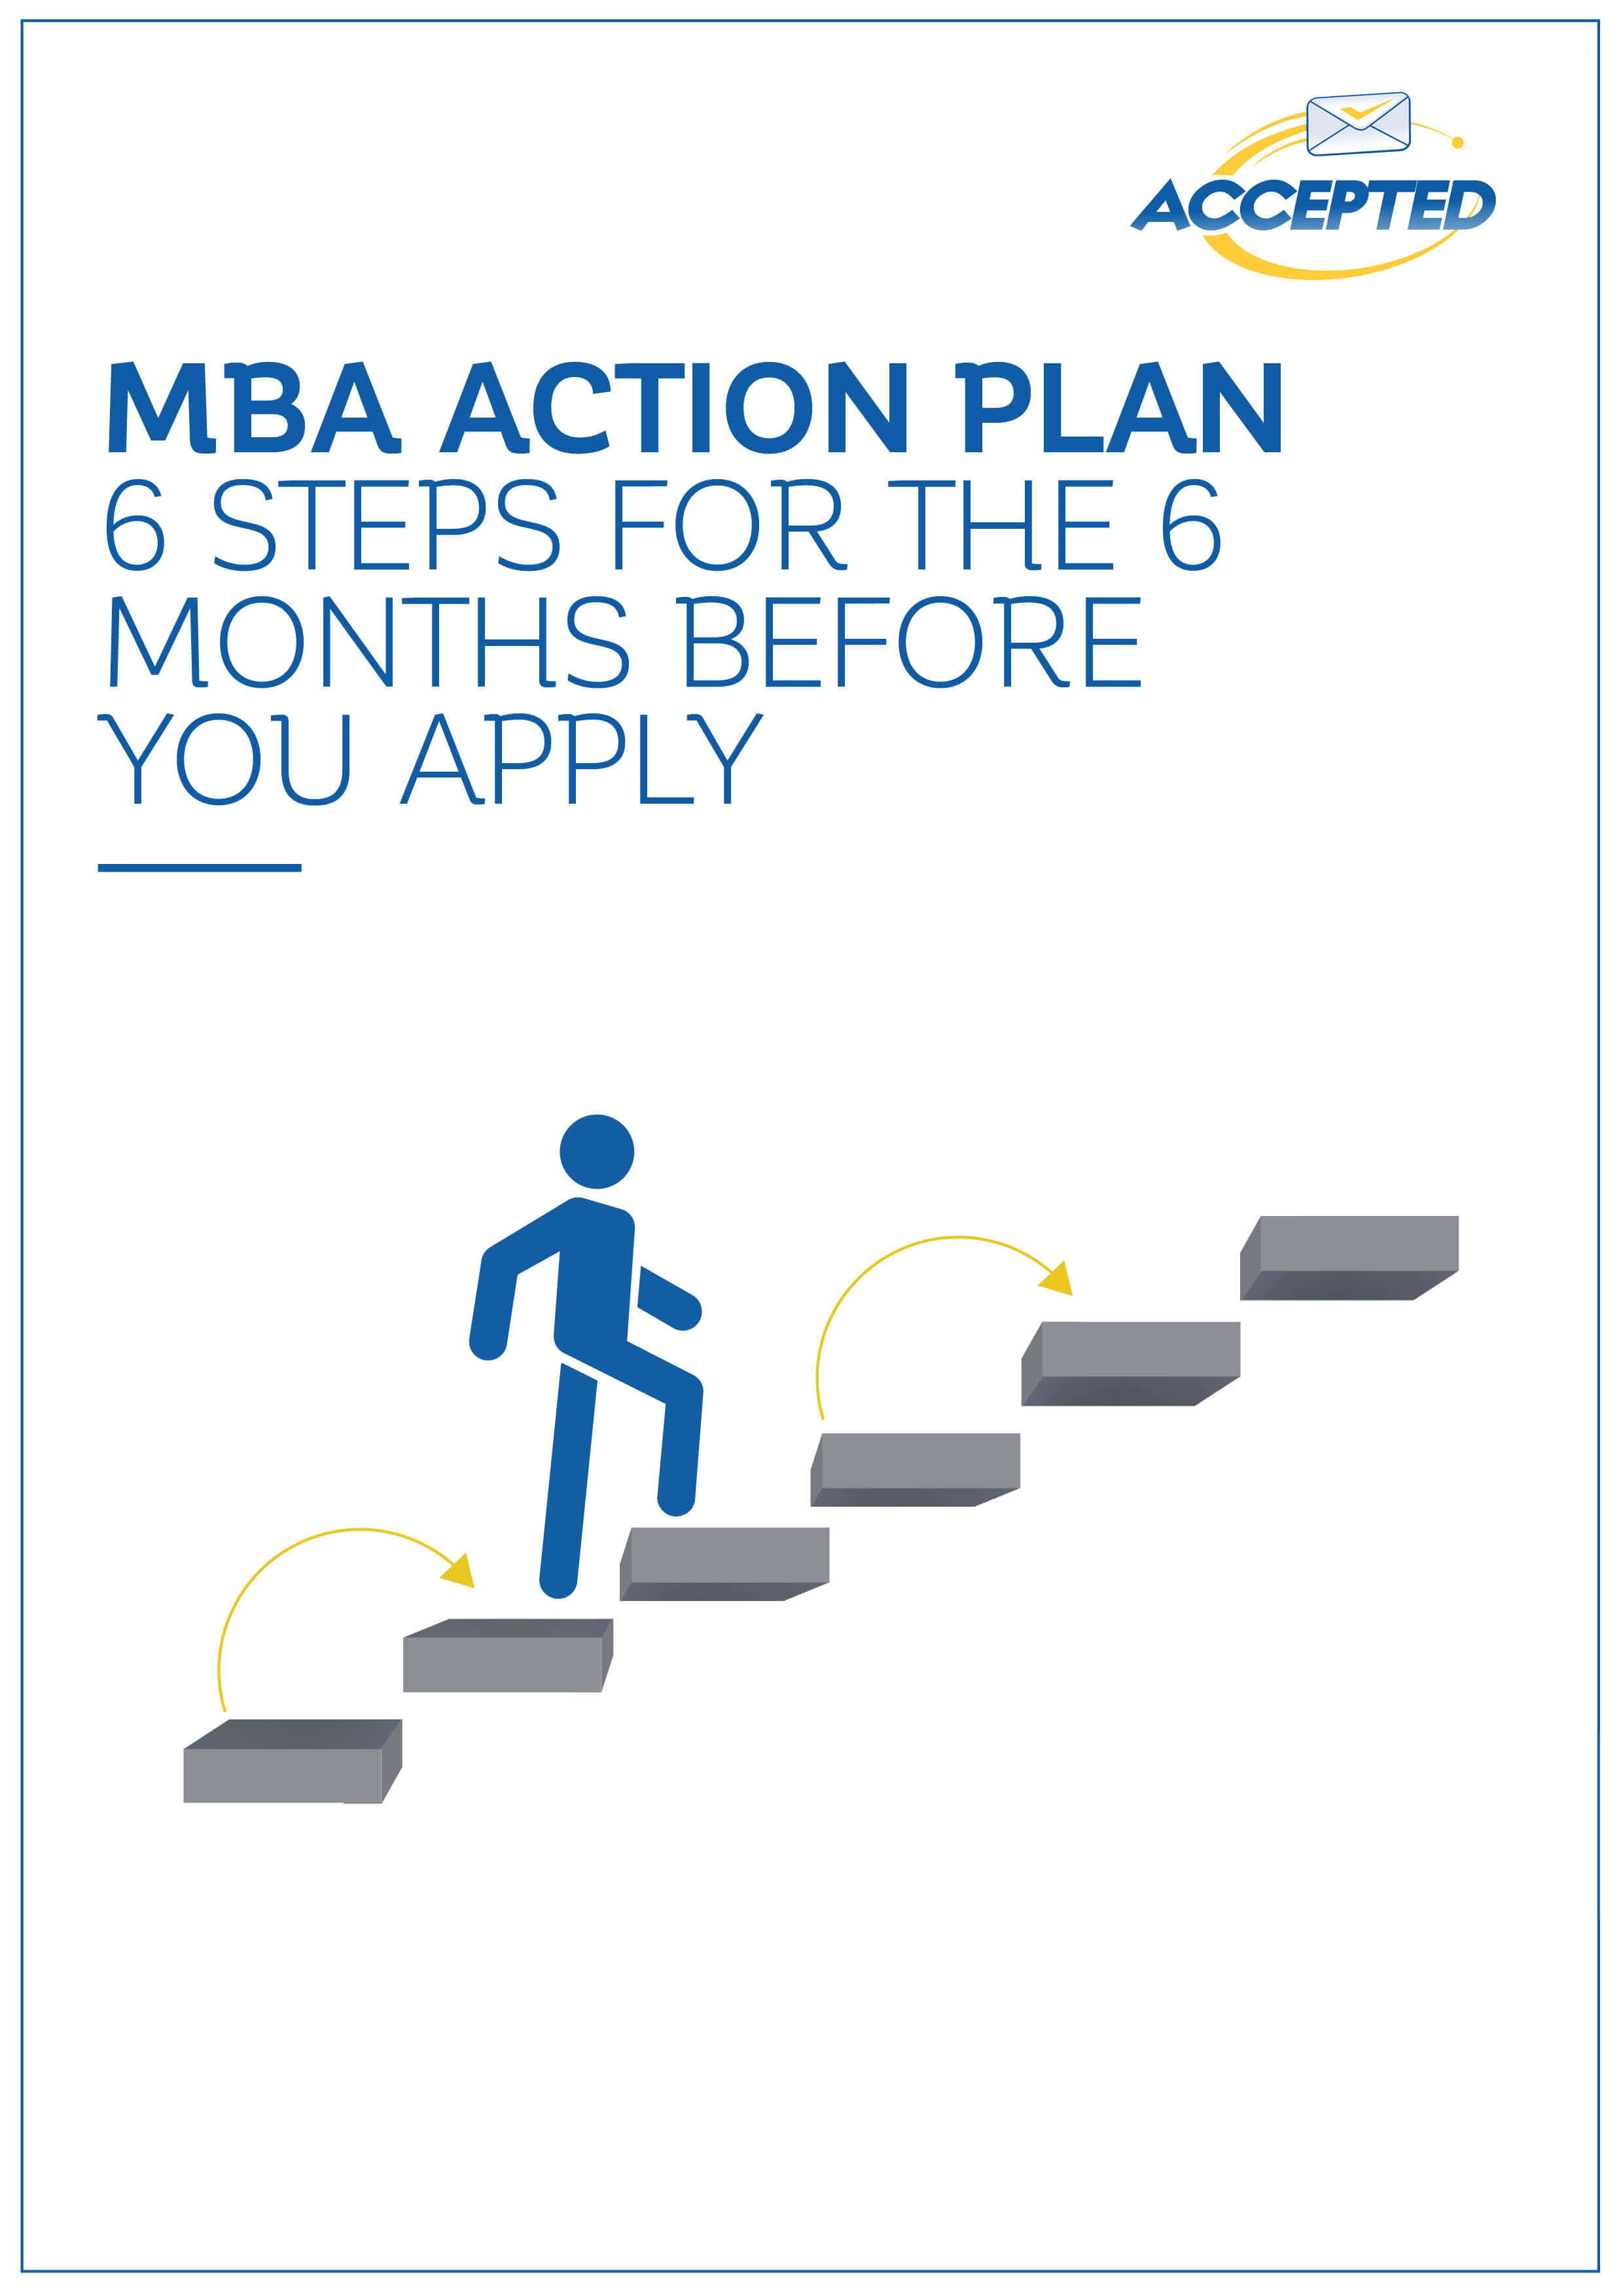 MBA_Action_Plan_Guide_Cover.jpg